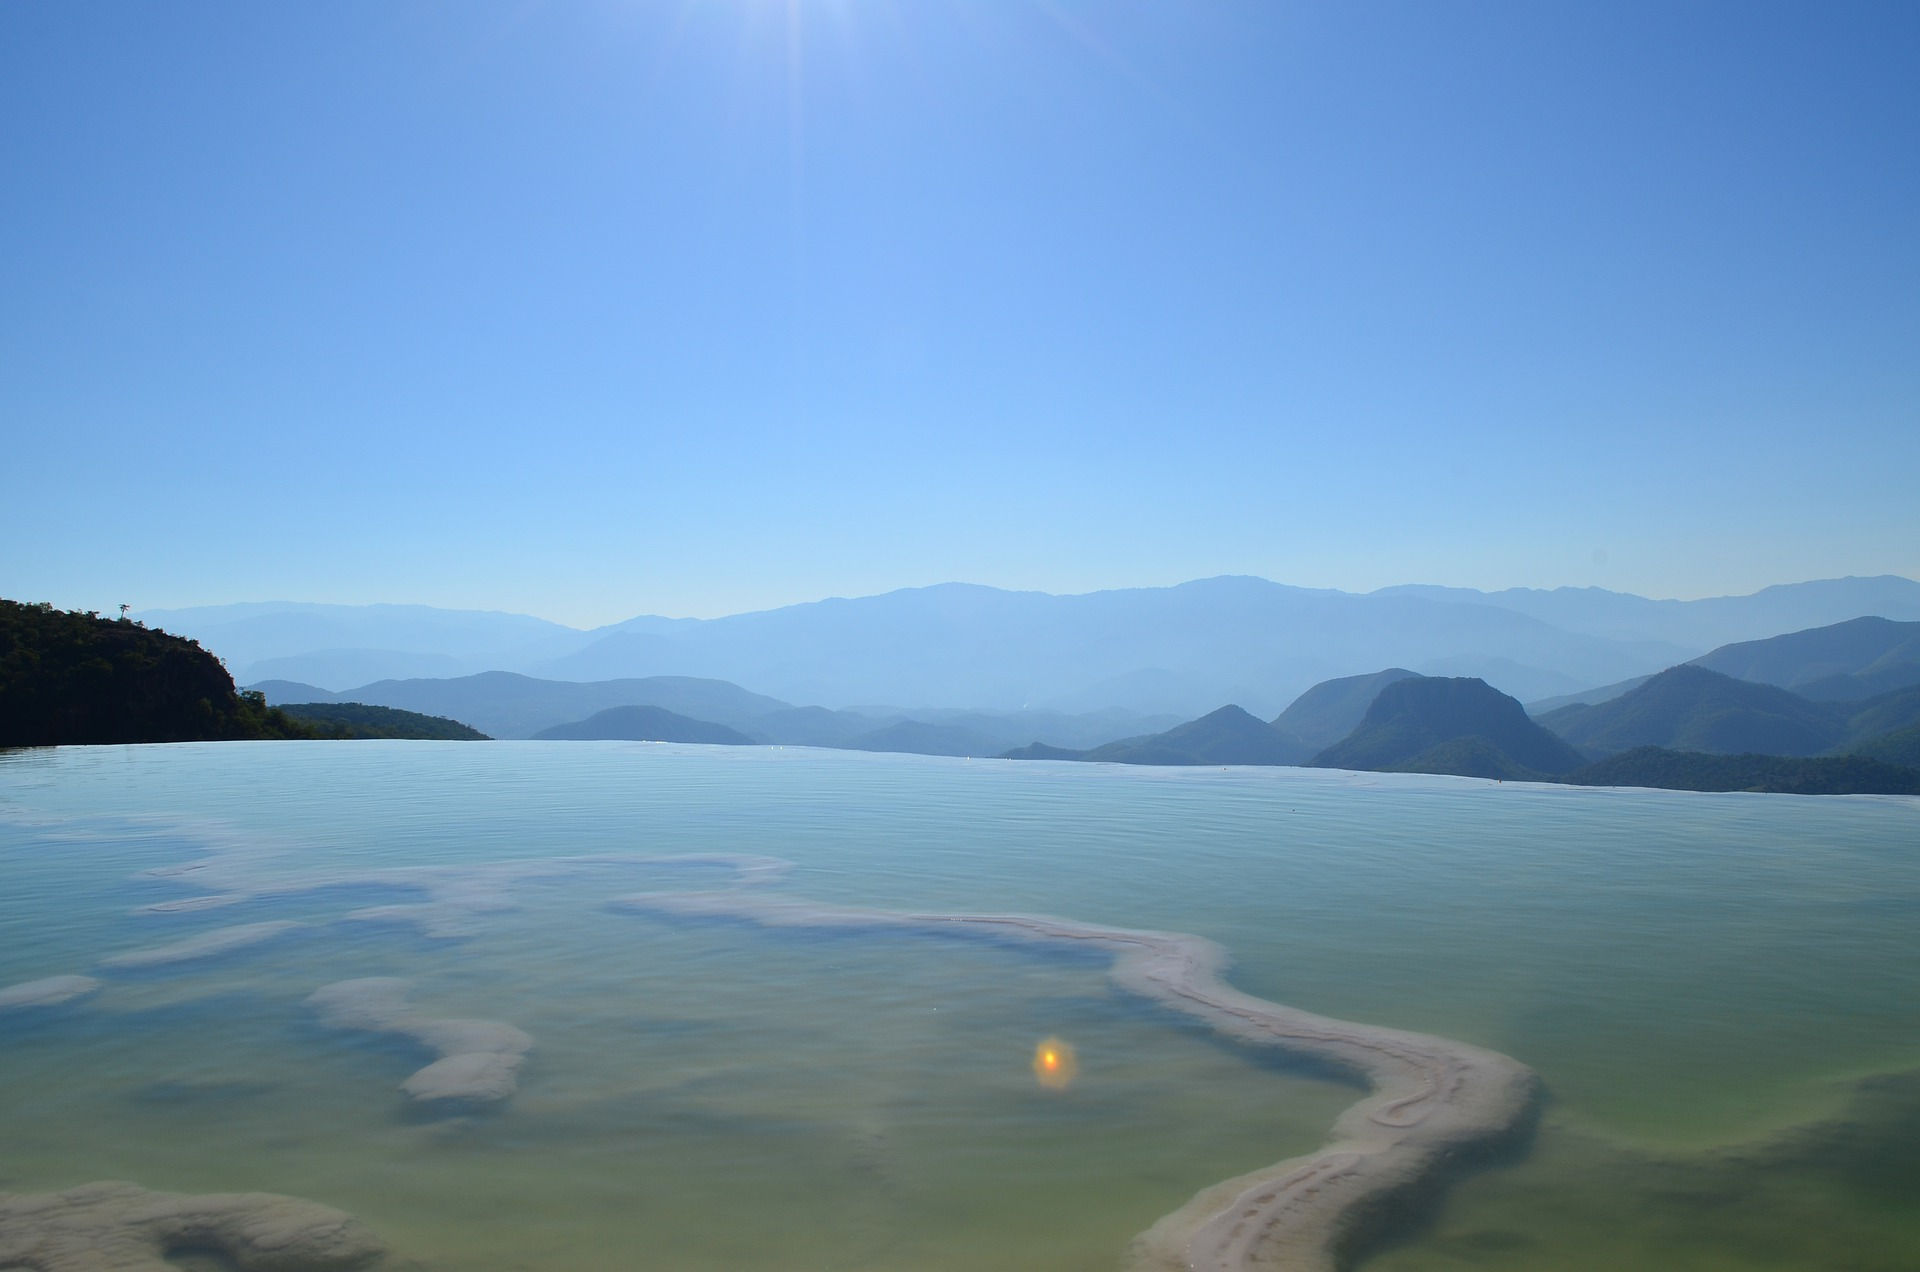 Blue sky and mountains in the distance; what appears to be still water in the foreground